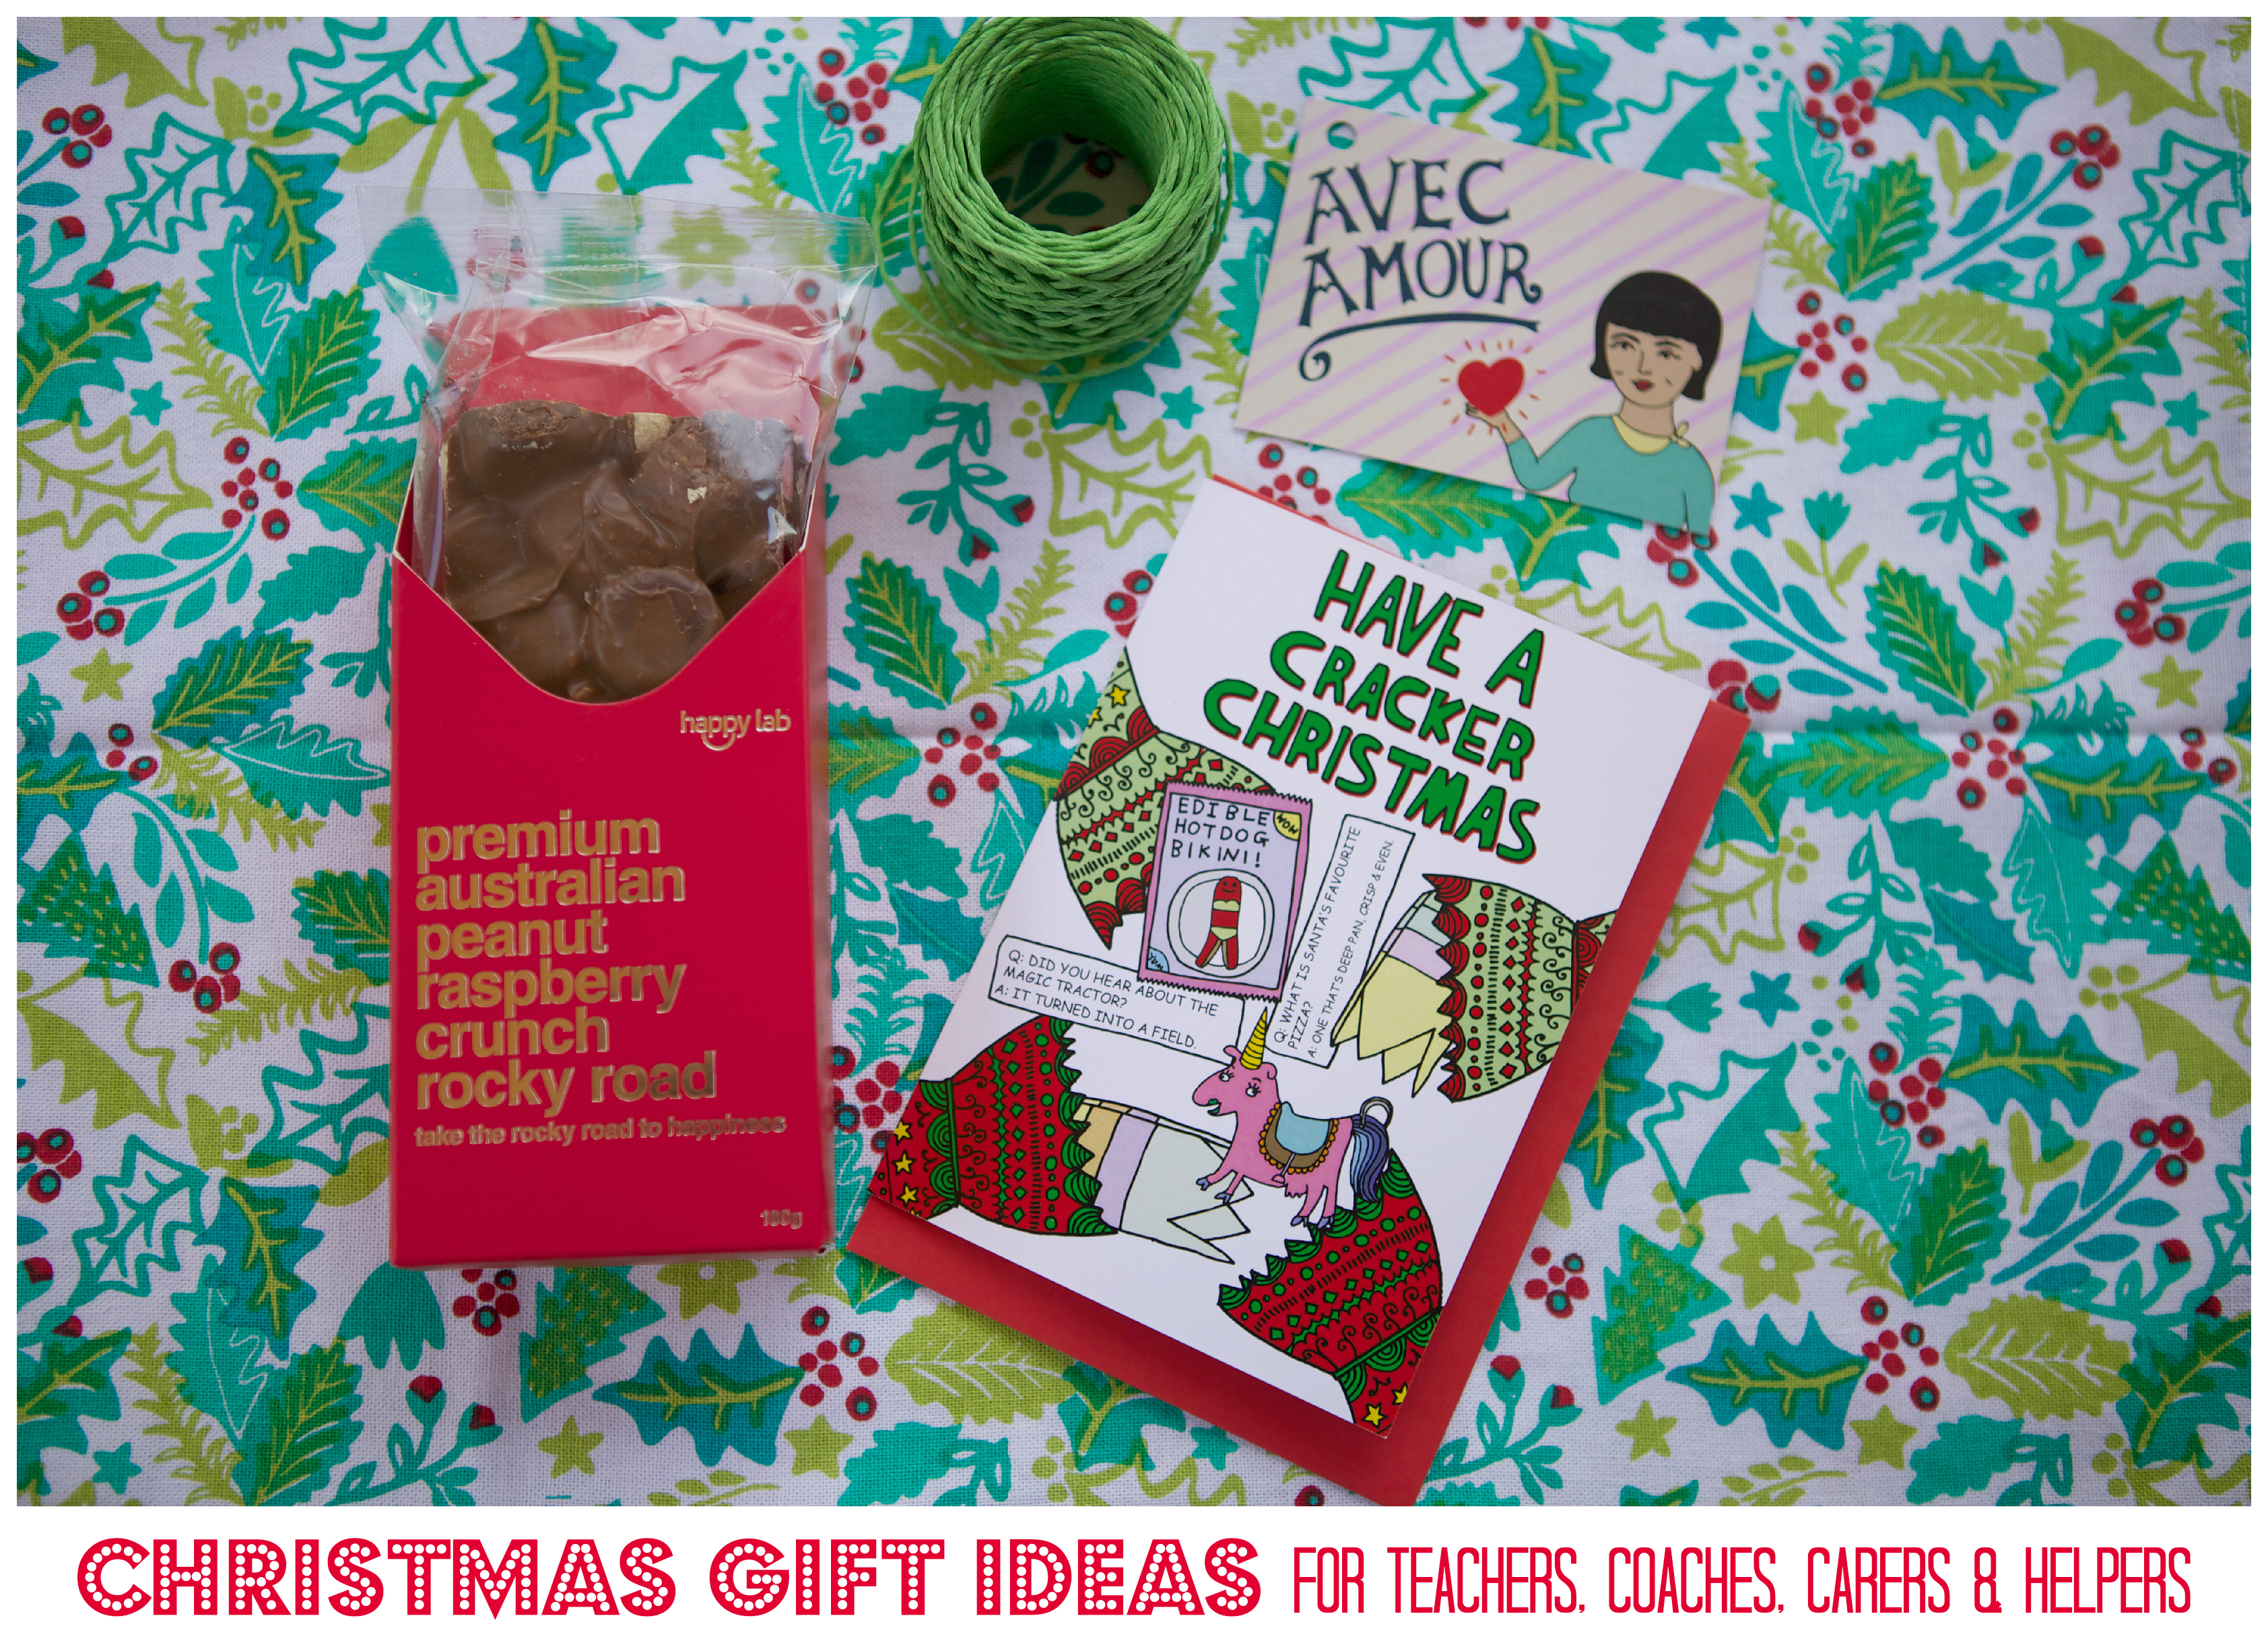 christmas gift ideas for teachers et al graphic